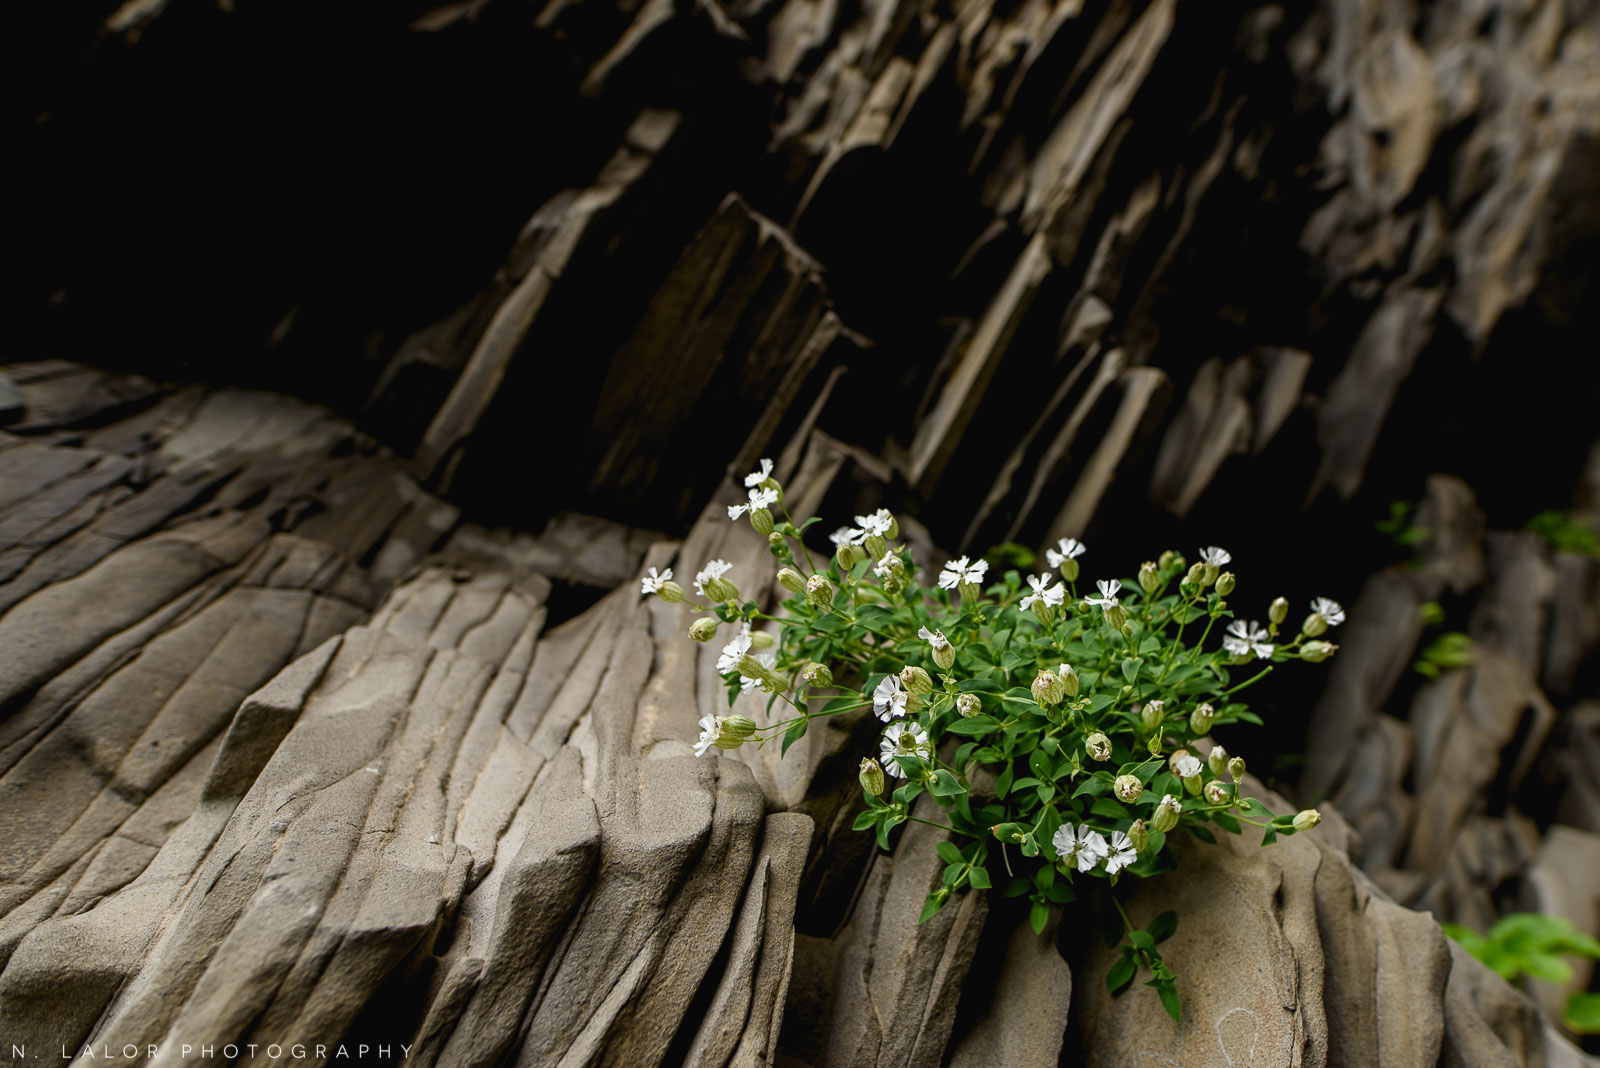 Plants in the Hálsanefshellir cave at the black sand beach - only visible during low-tide. From my trip to Iceland in 2018. Photograph by Nataliya Lalor.